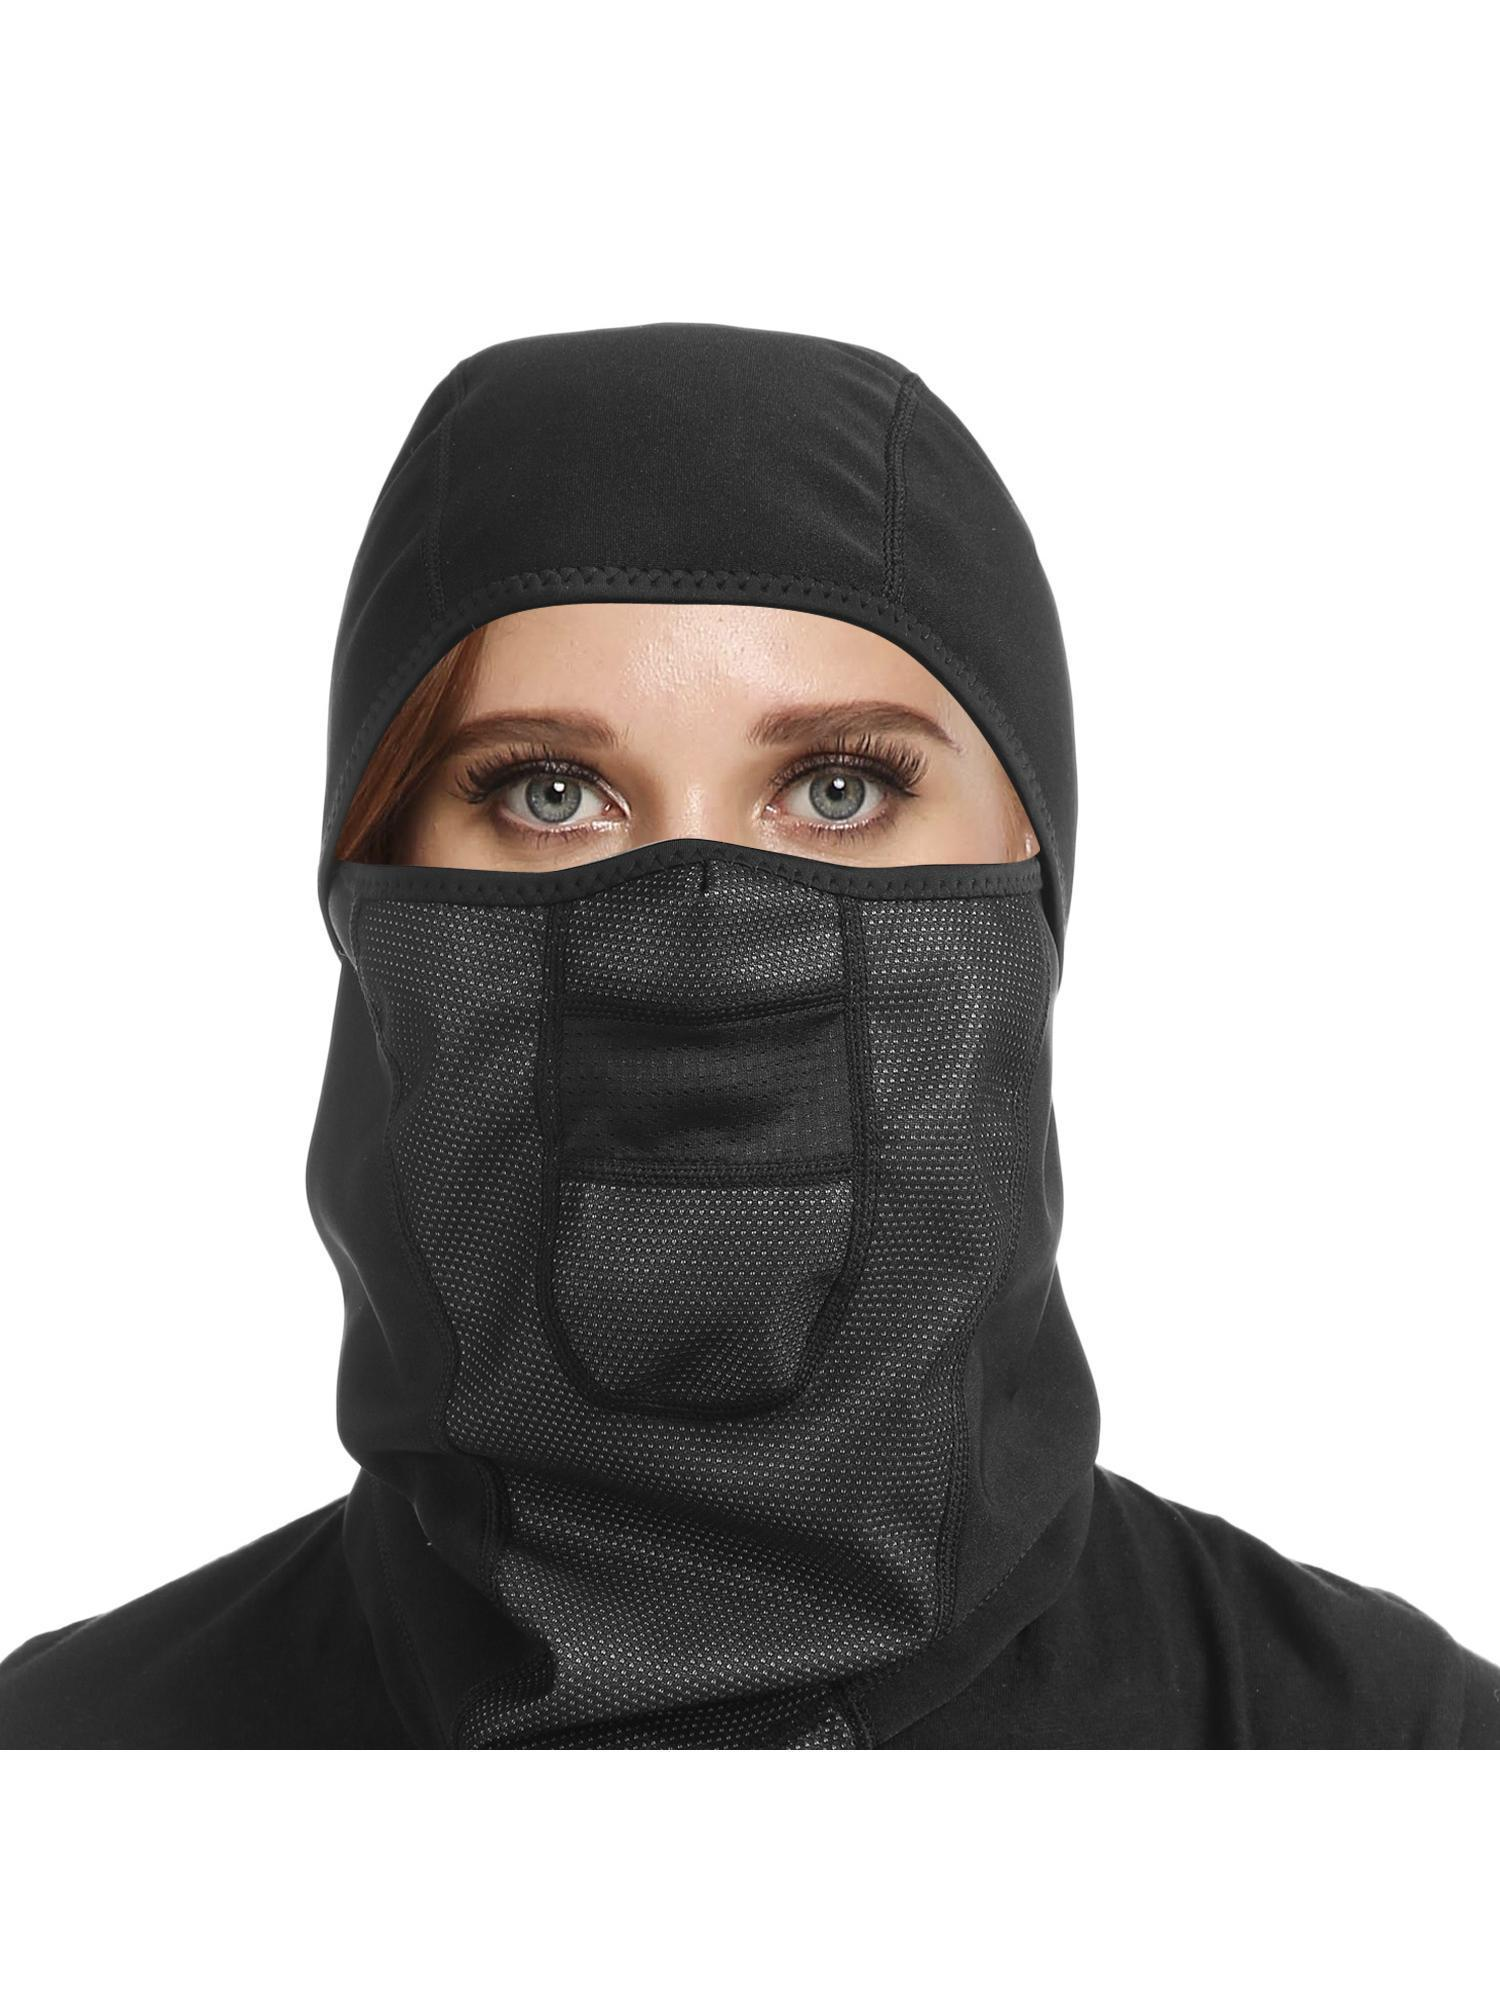 Wind-Resistant Face Shield Full Coverage Warmth Face Guard Hinged Fleece Balaclava Face Masks Veil for Outdoor... by